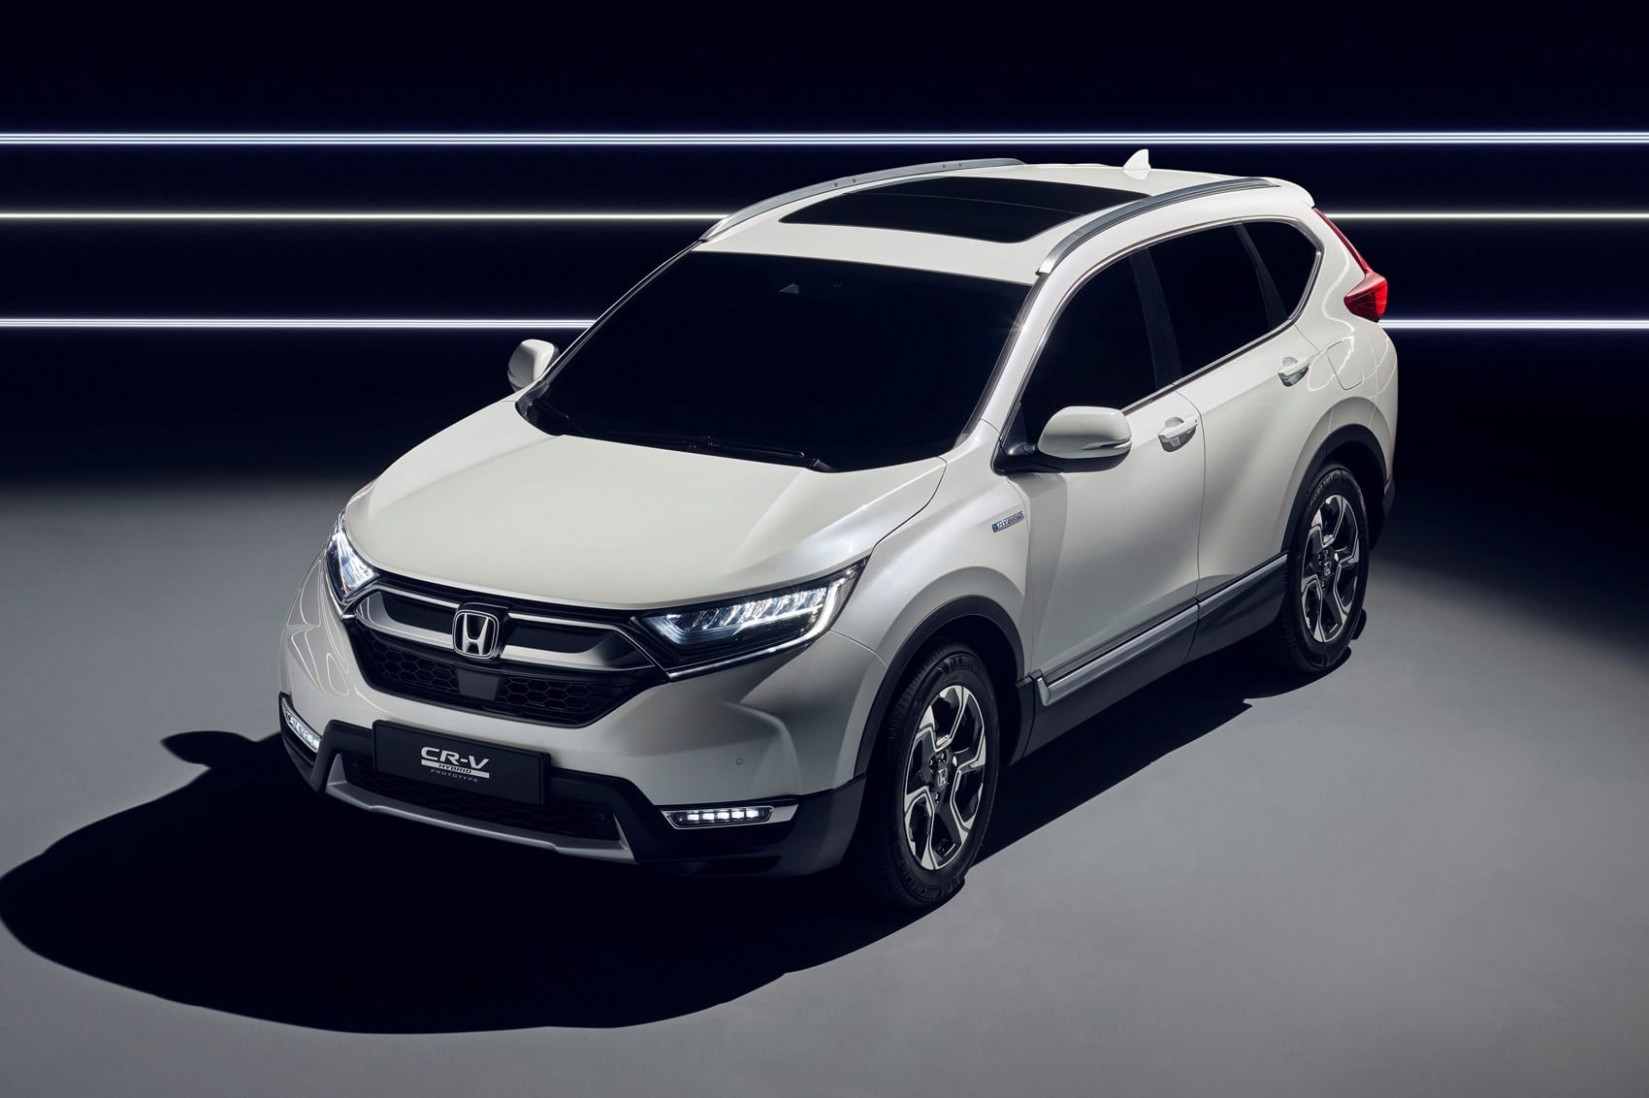 6 Honda CR-V Release Date, Price, And Specifications ..